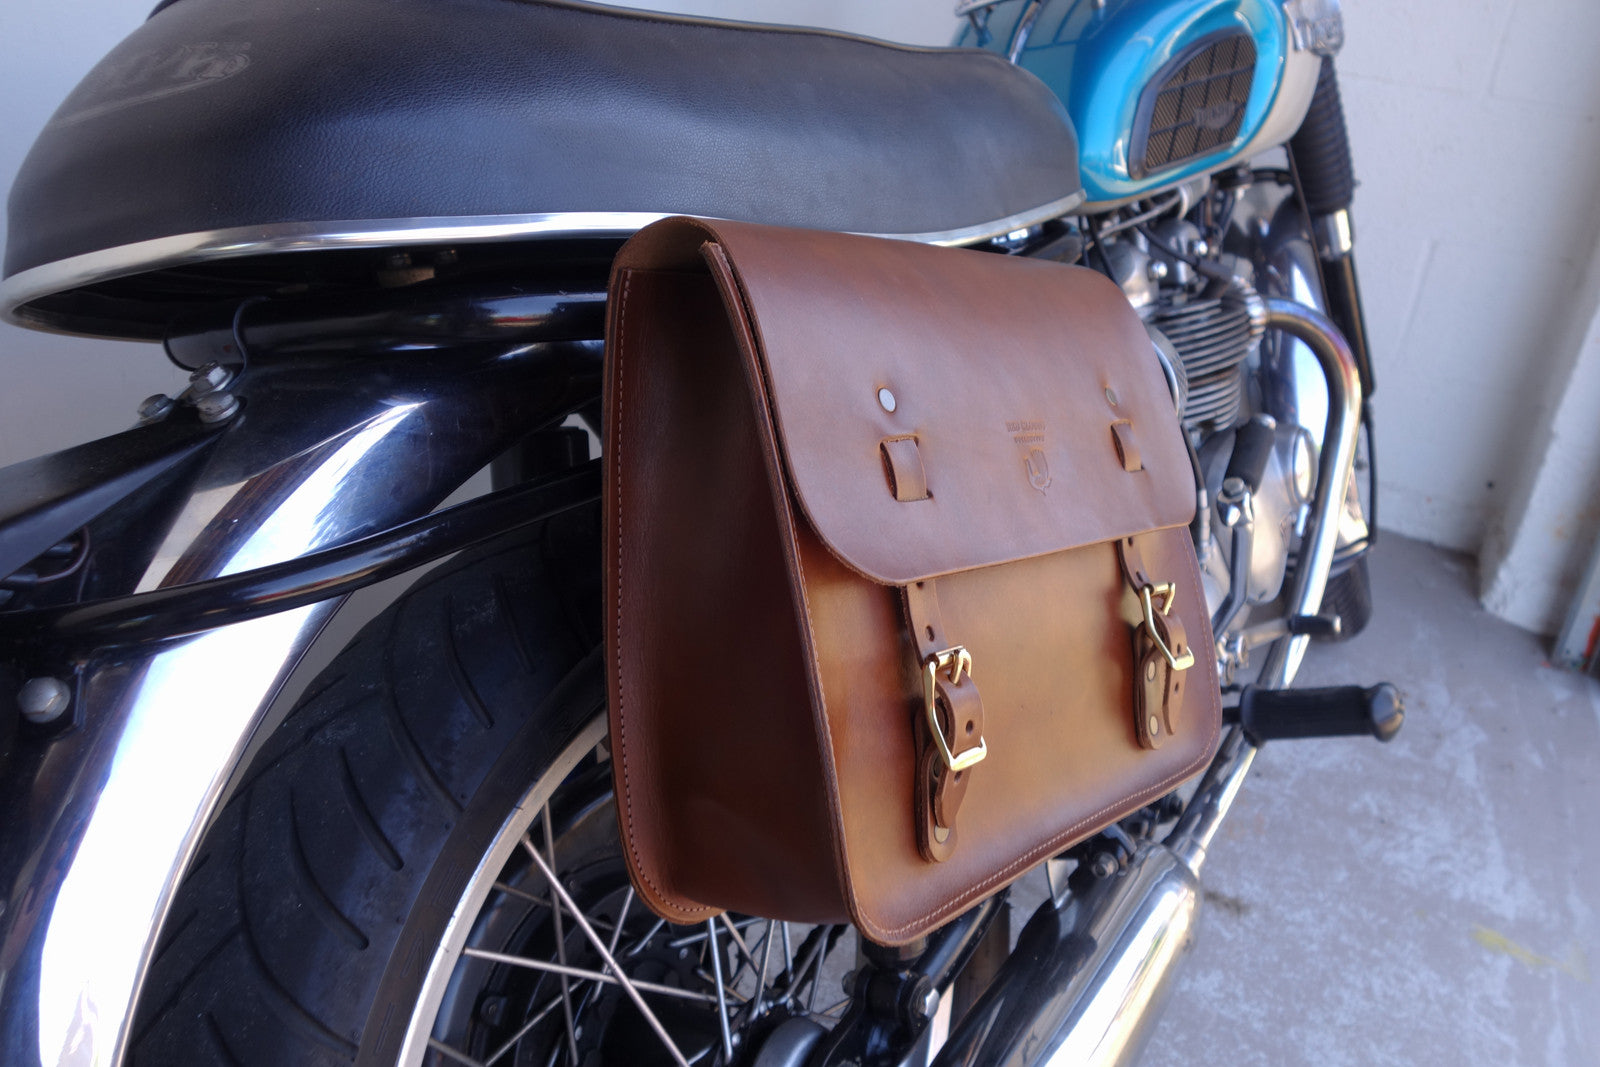 Leather saddle bag, bike bag, saddle bag, motorcycle bag, sissy bar bag, leather bag, tool bag, beer bag, side bag, single saddle bag, universal bag